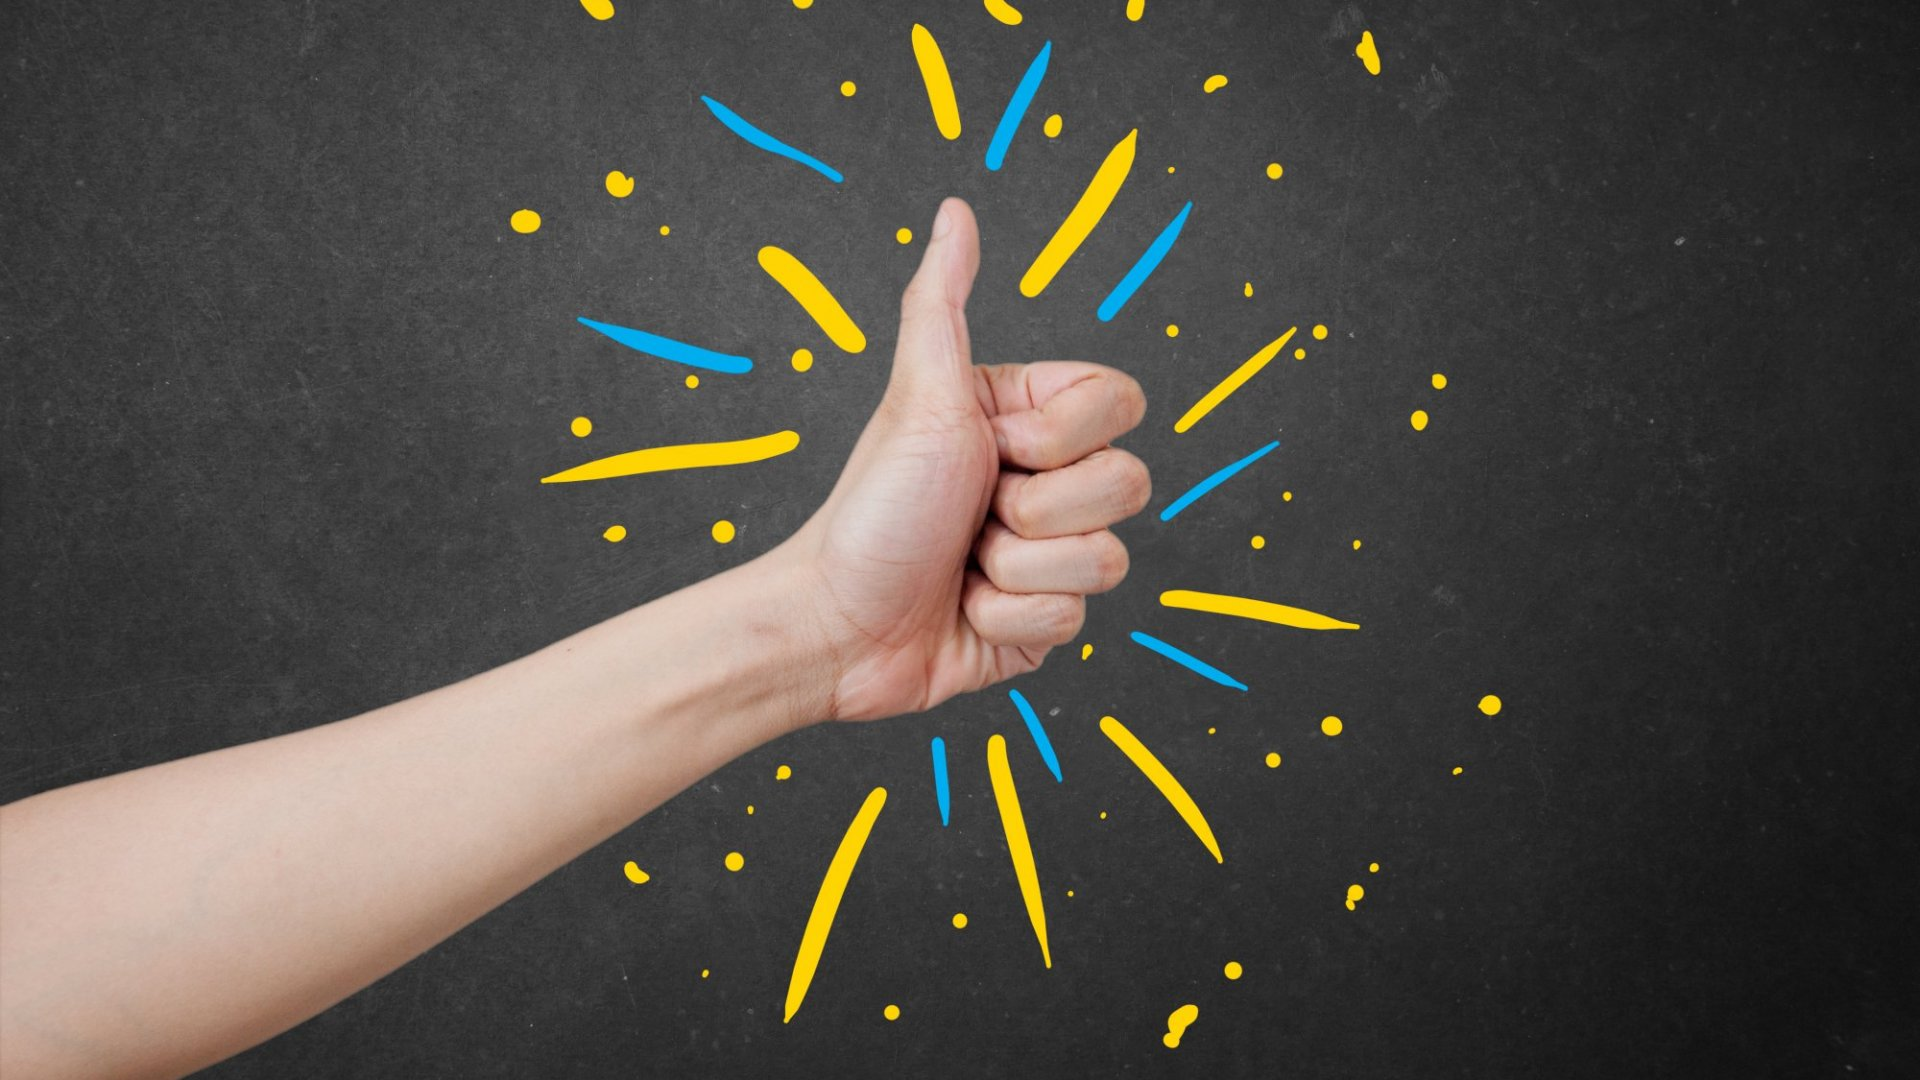 3 Ways to Get More Positive Feedback From Your Boss